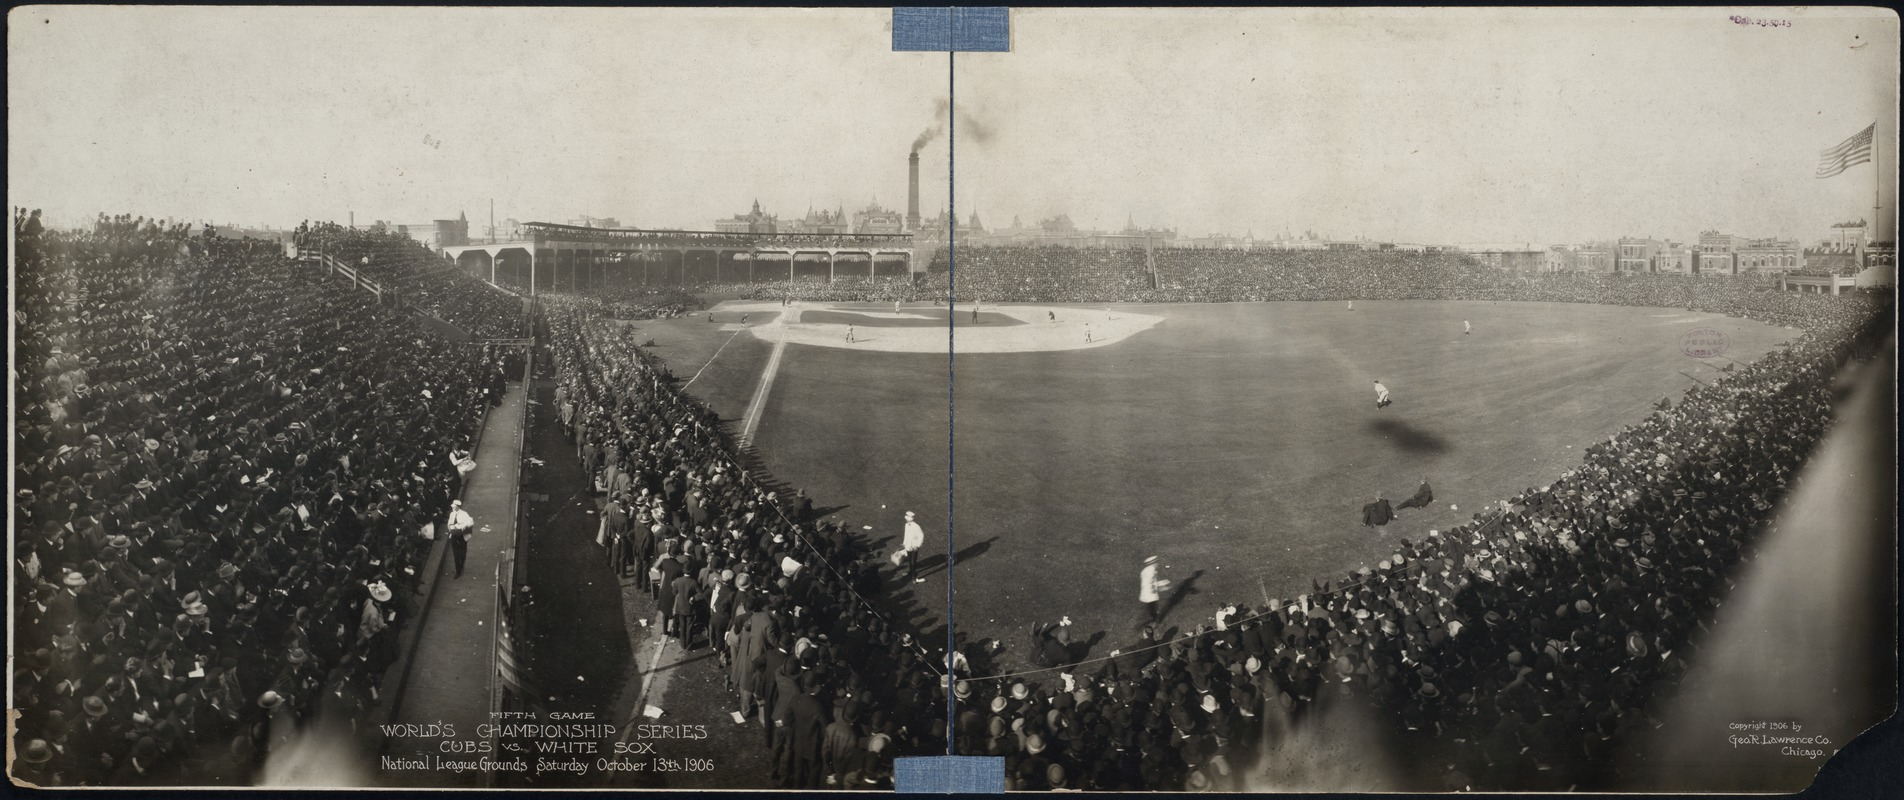 1906 World Series game at West Side Park in Chicago